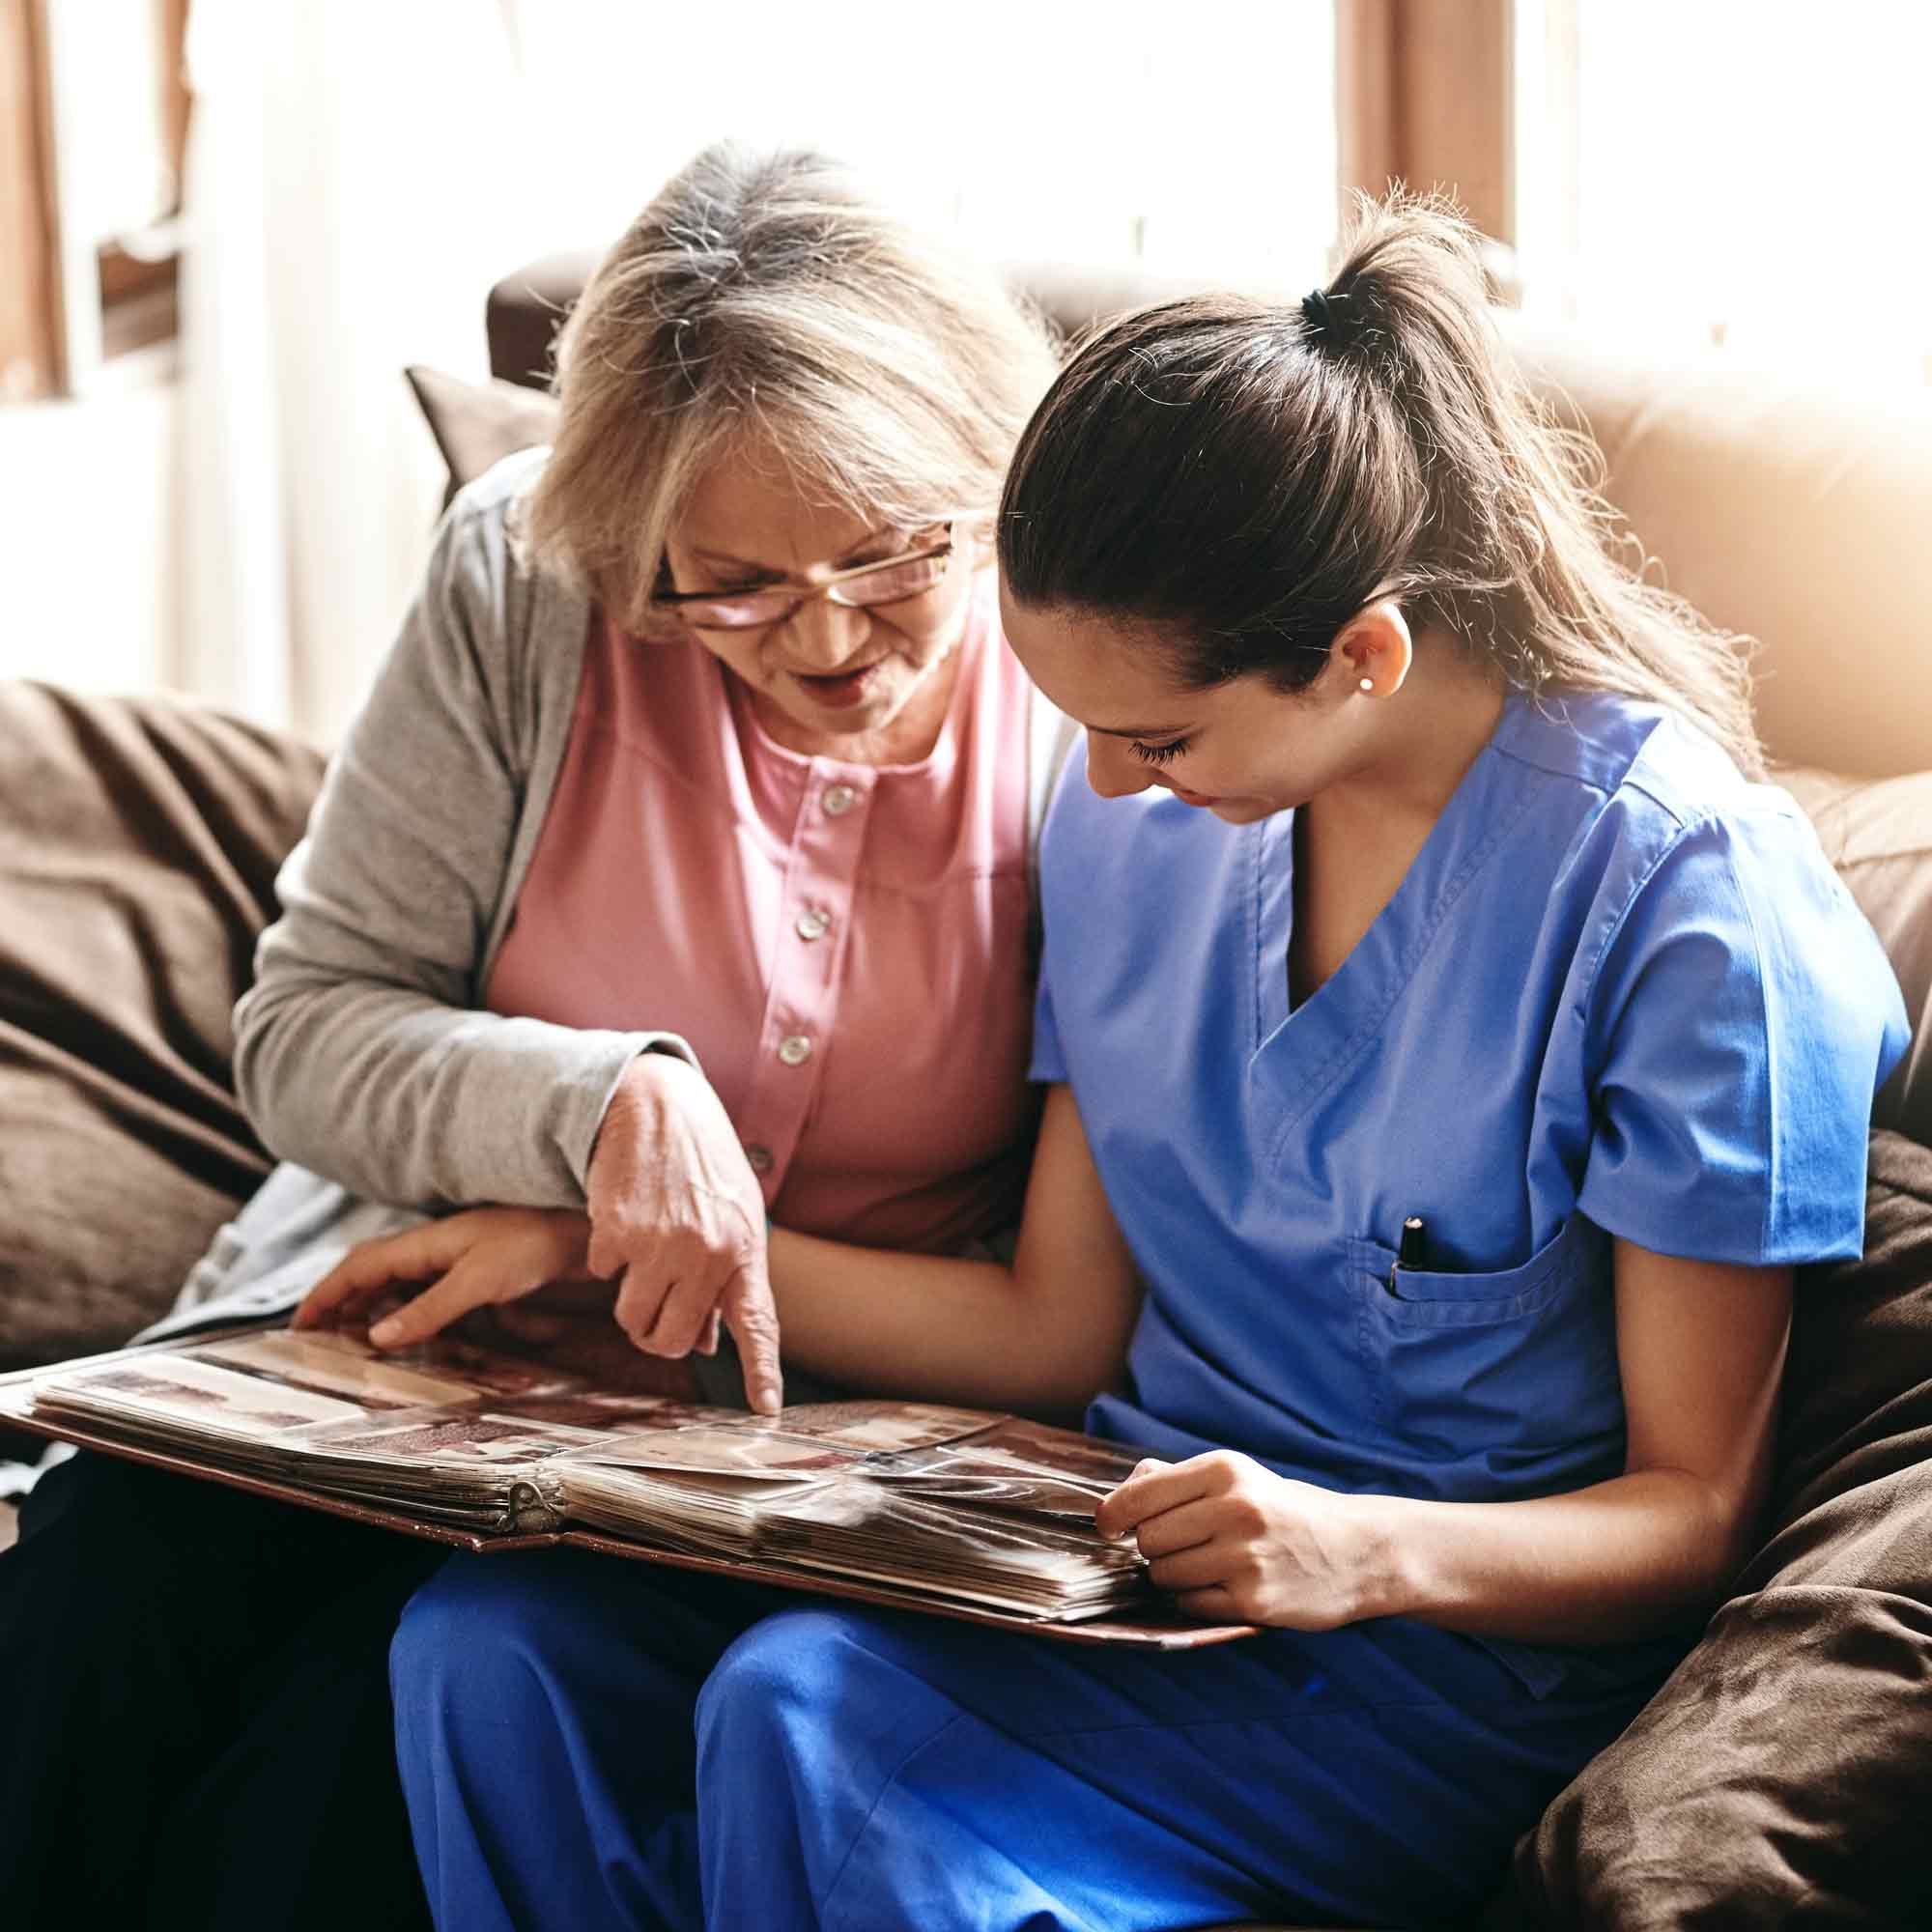 Memory Care Patient and Caretaker Looking at Pictures - The Pinnacle of Southaven